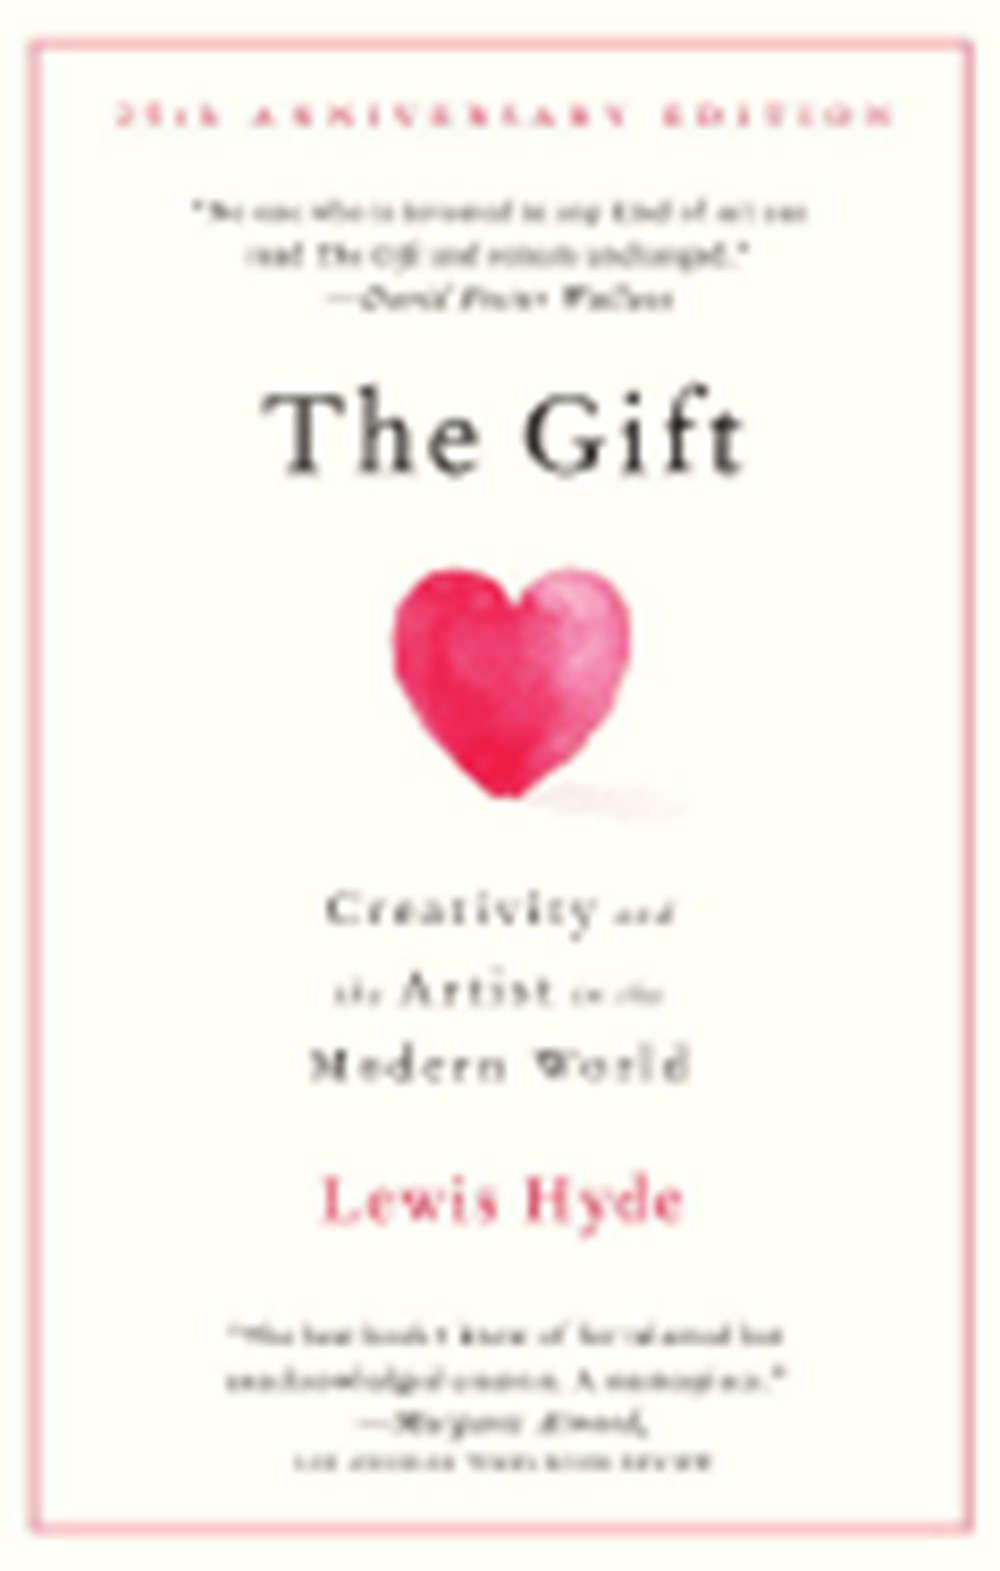 Gift Creativity and the Artist in the Modern World (Anniversary)